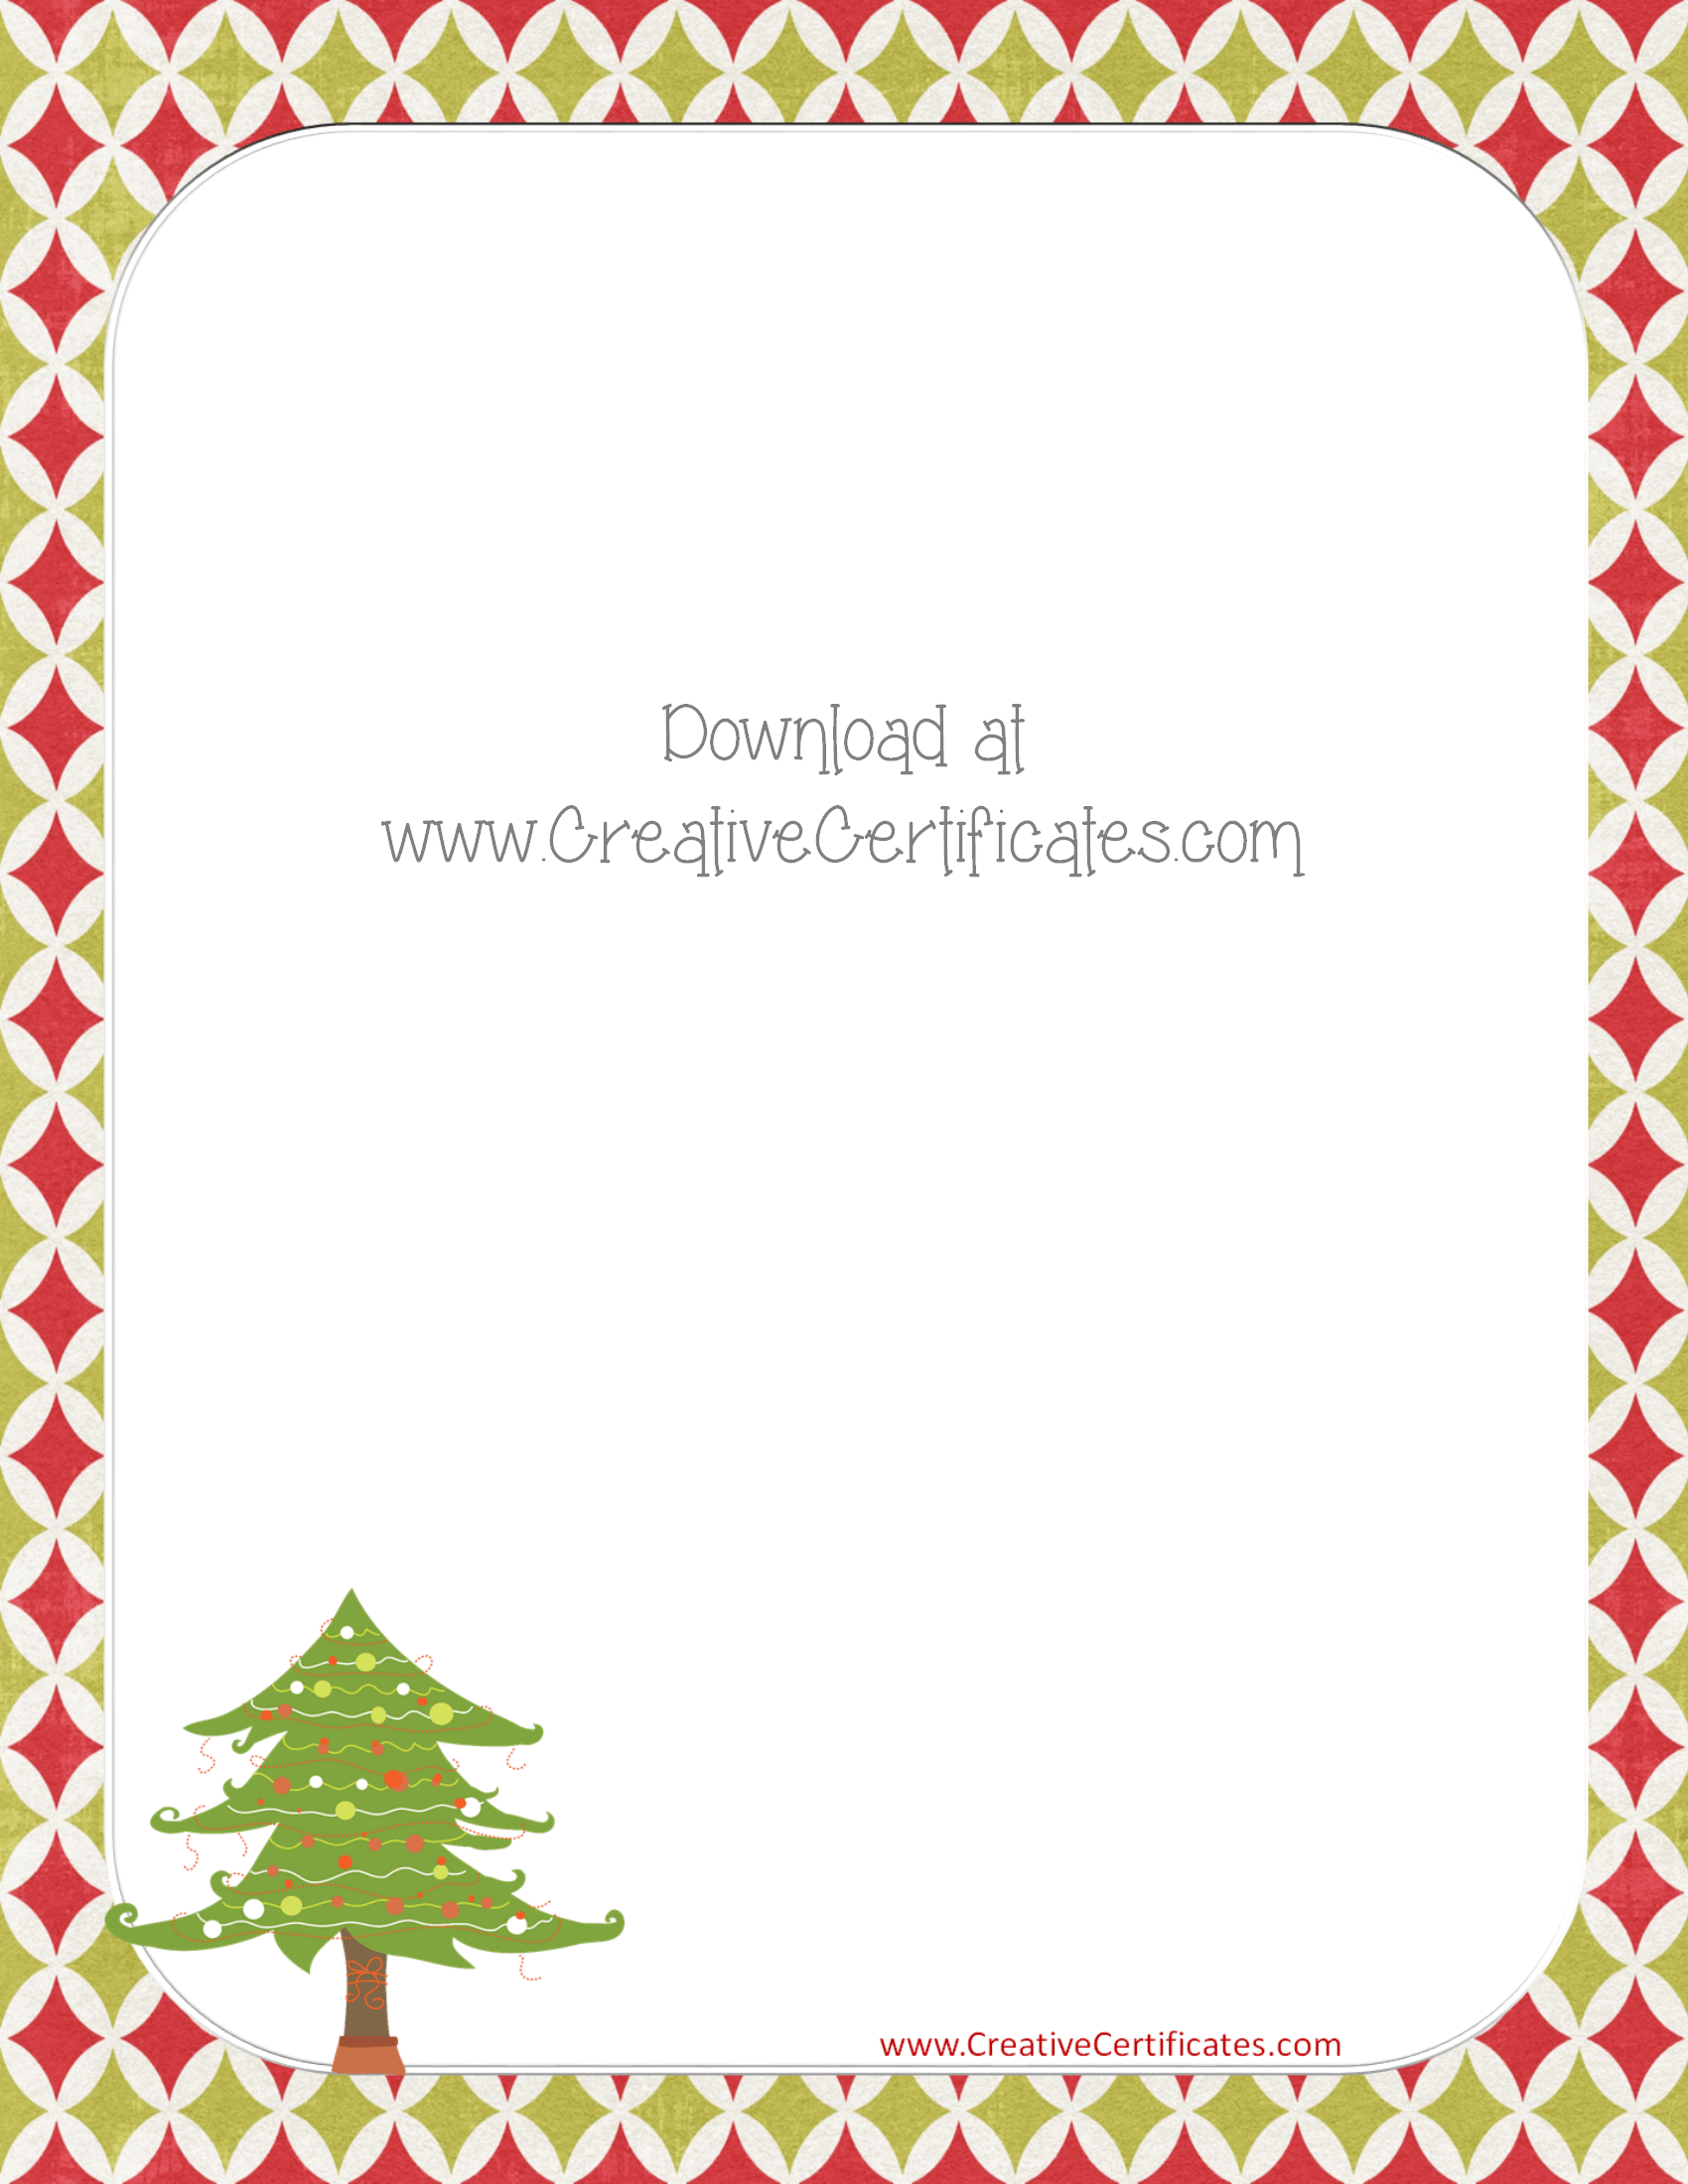 christmas certificates templates for word – Free Christmas Templates for Word